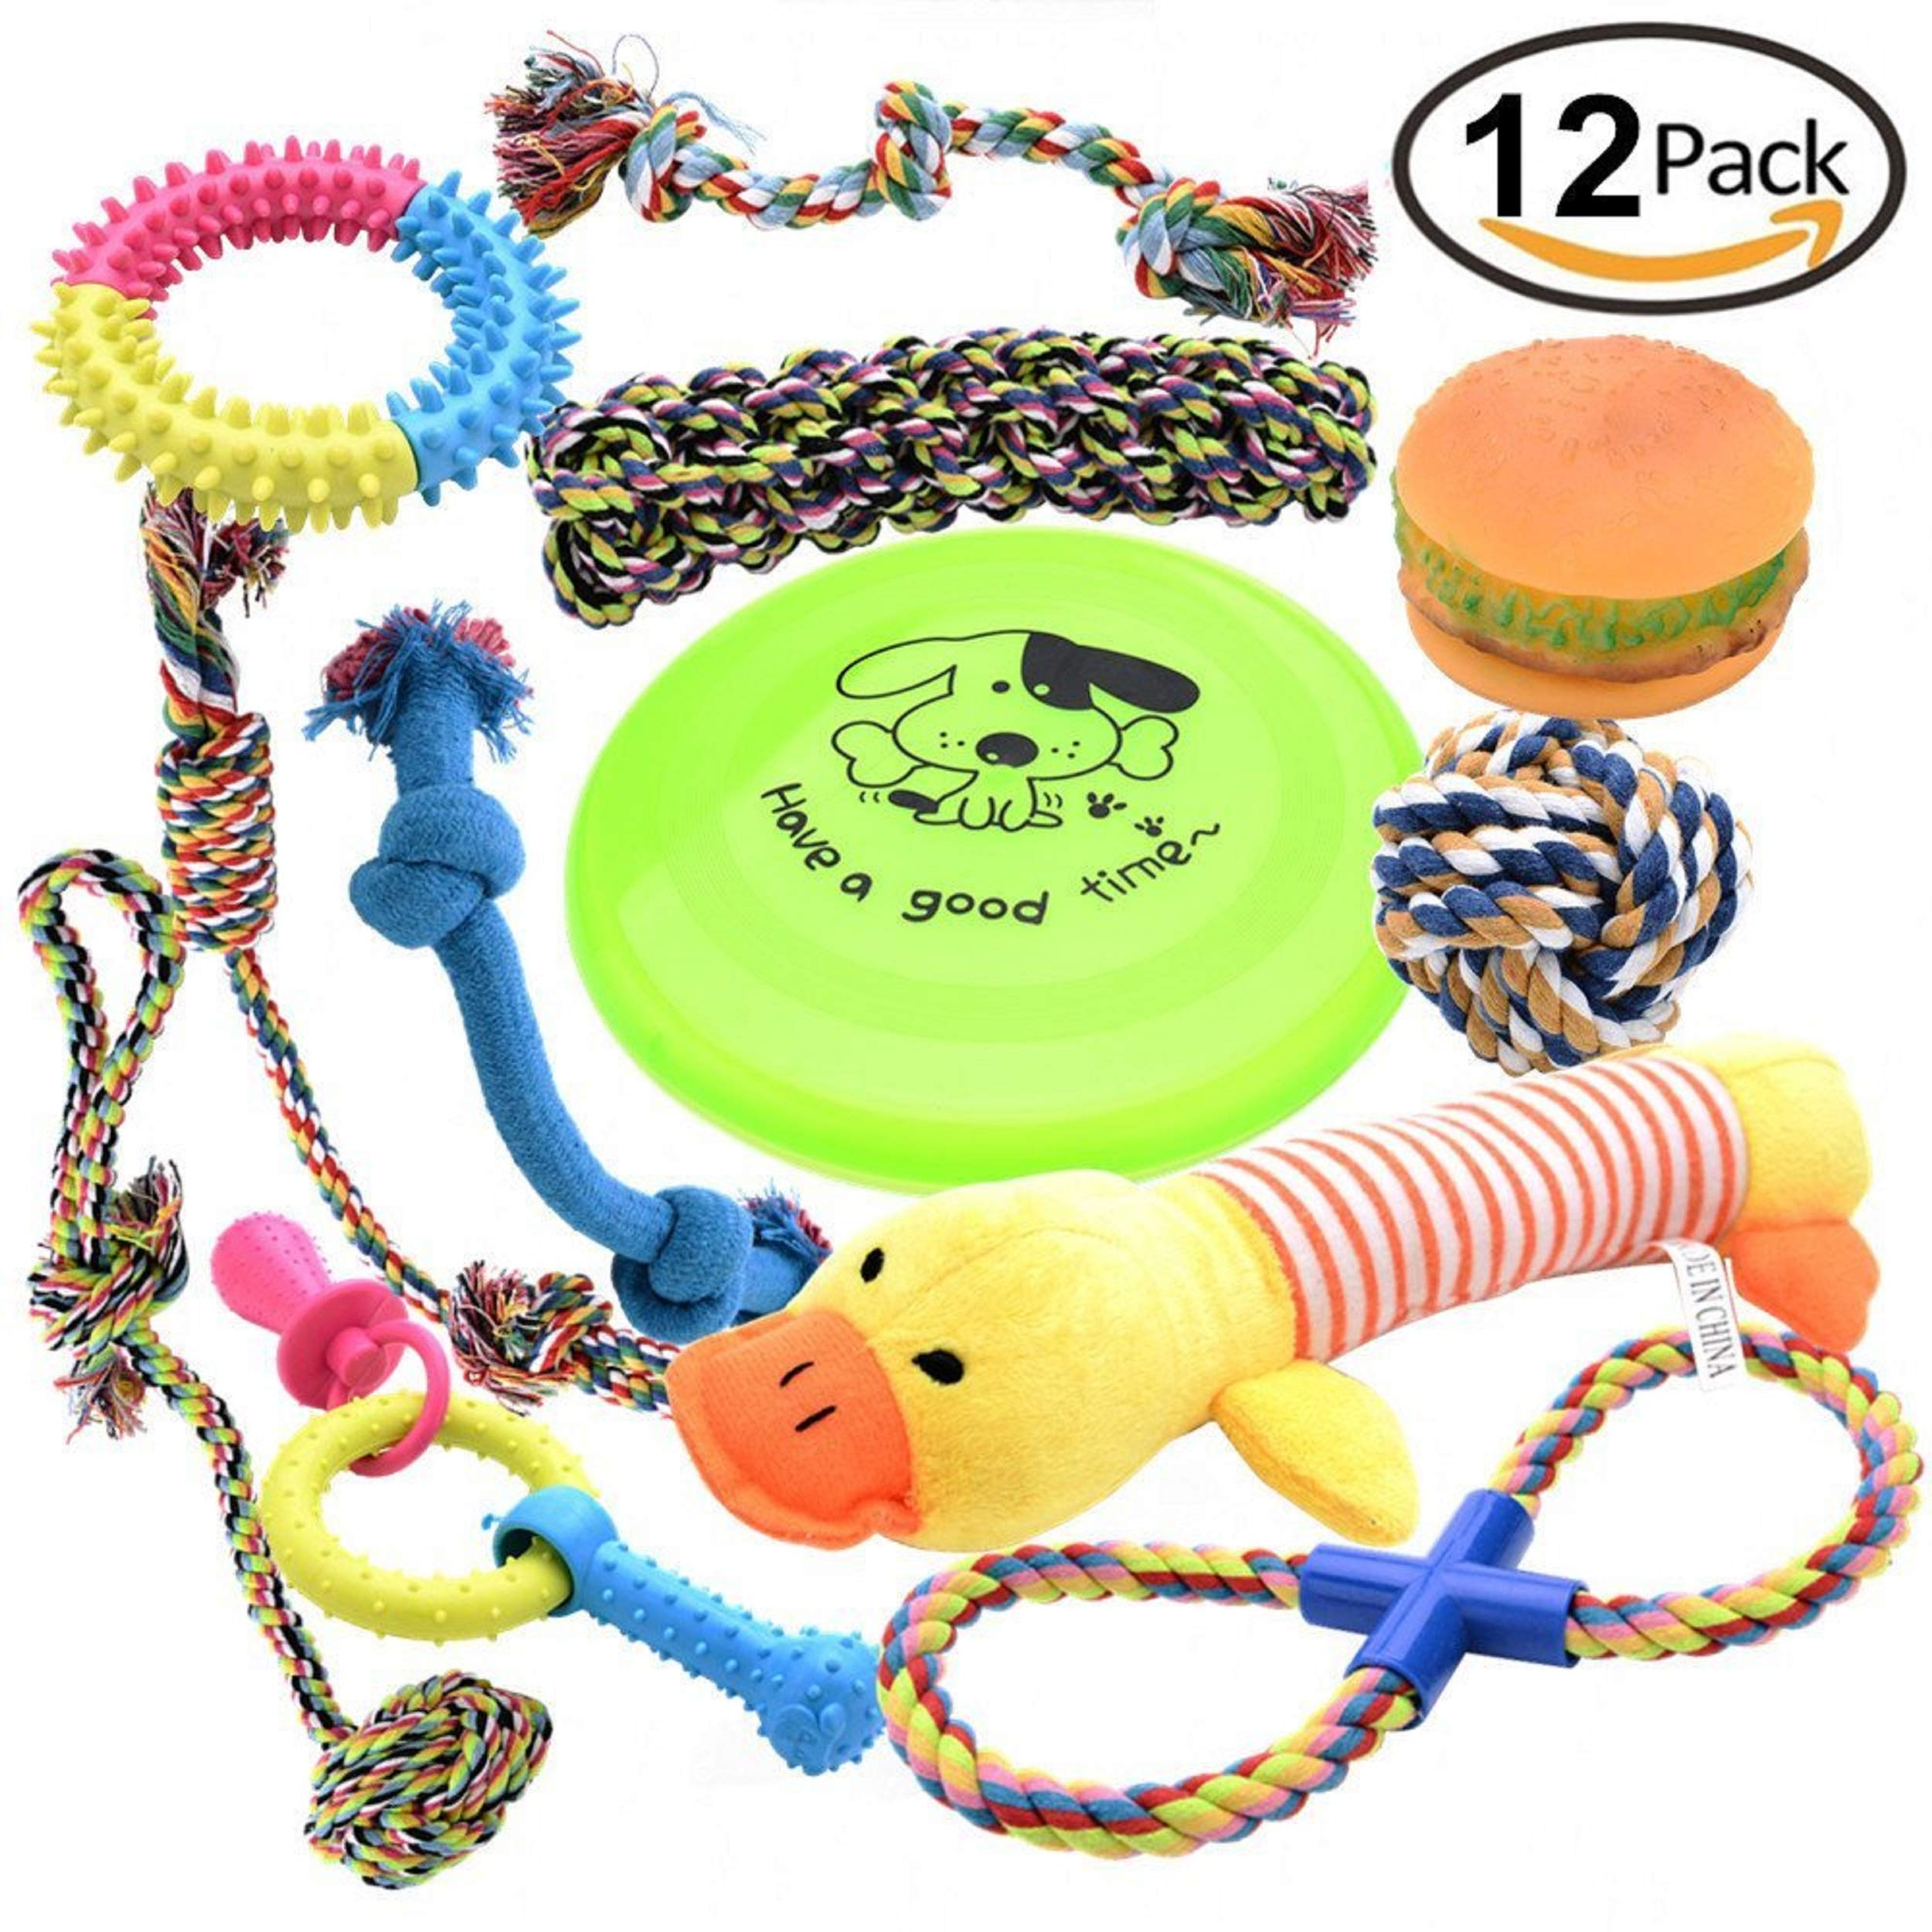 Pofar [12 Parck] Dog Toys Set with Ropes Chew Flying Squeak Frisbee Ball and Training Toys. Healthy Puppy Treats and Interactive Ropes